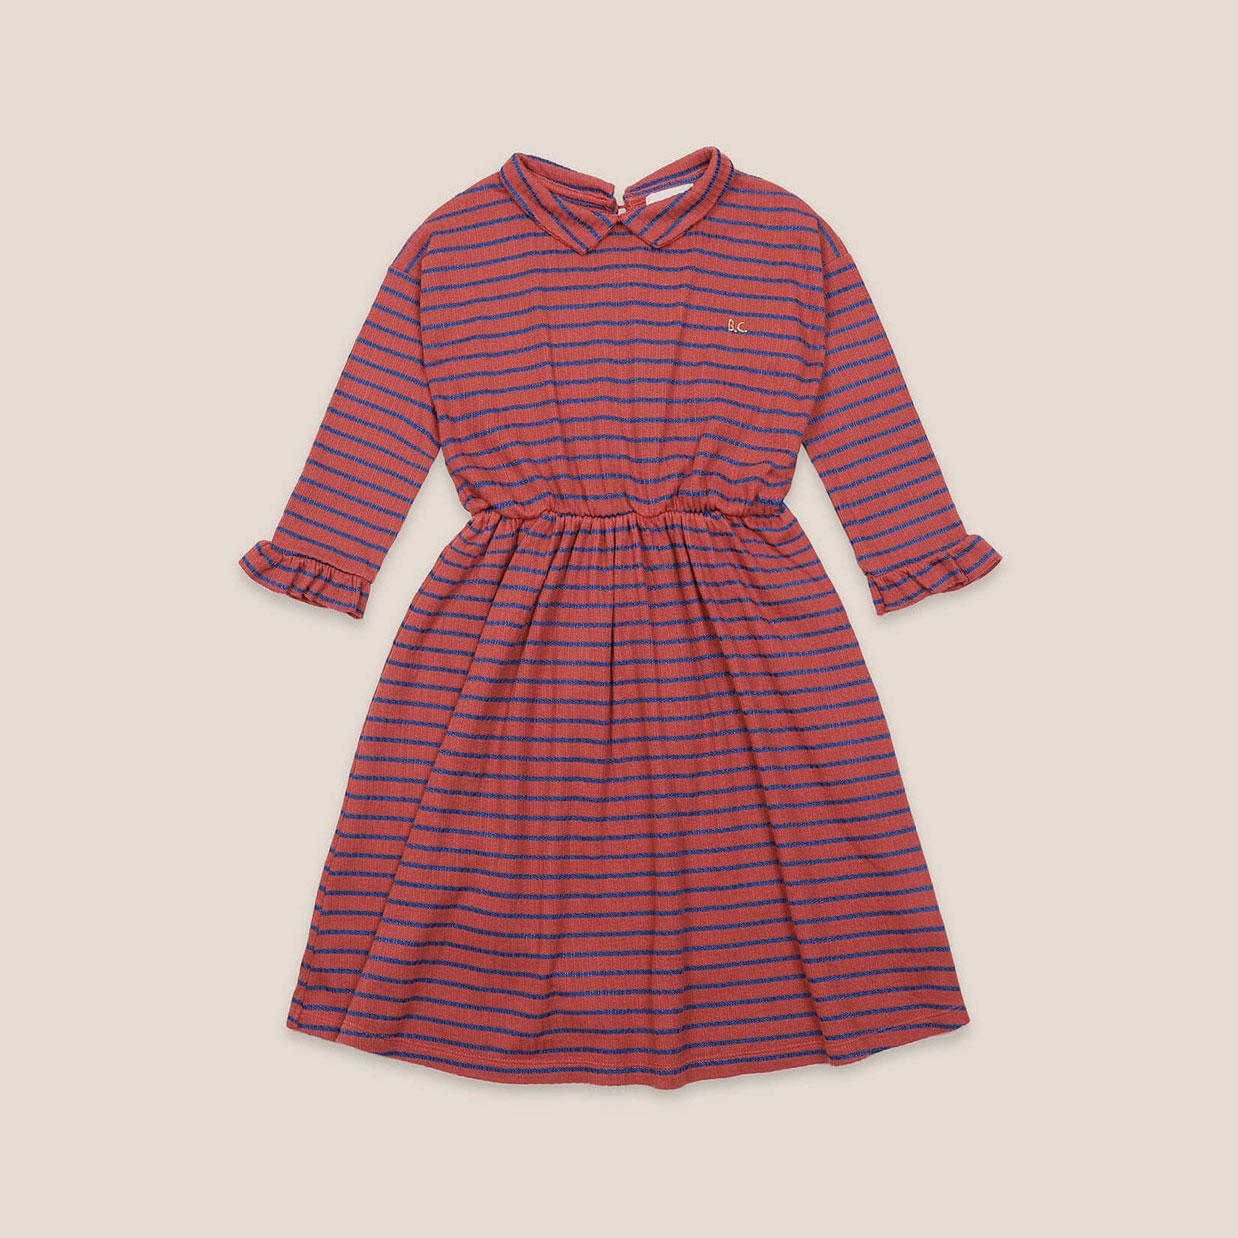 Bobo Choses - Striped Dress